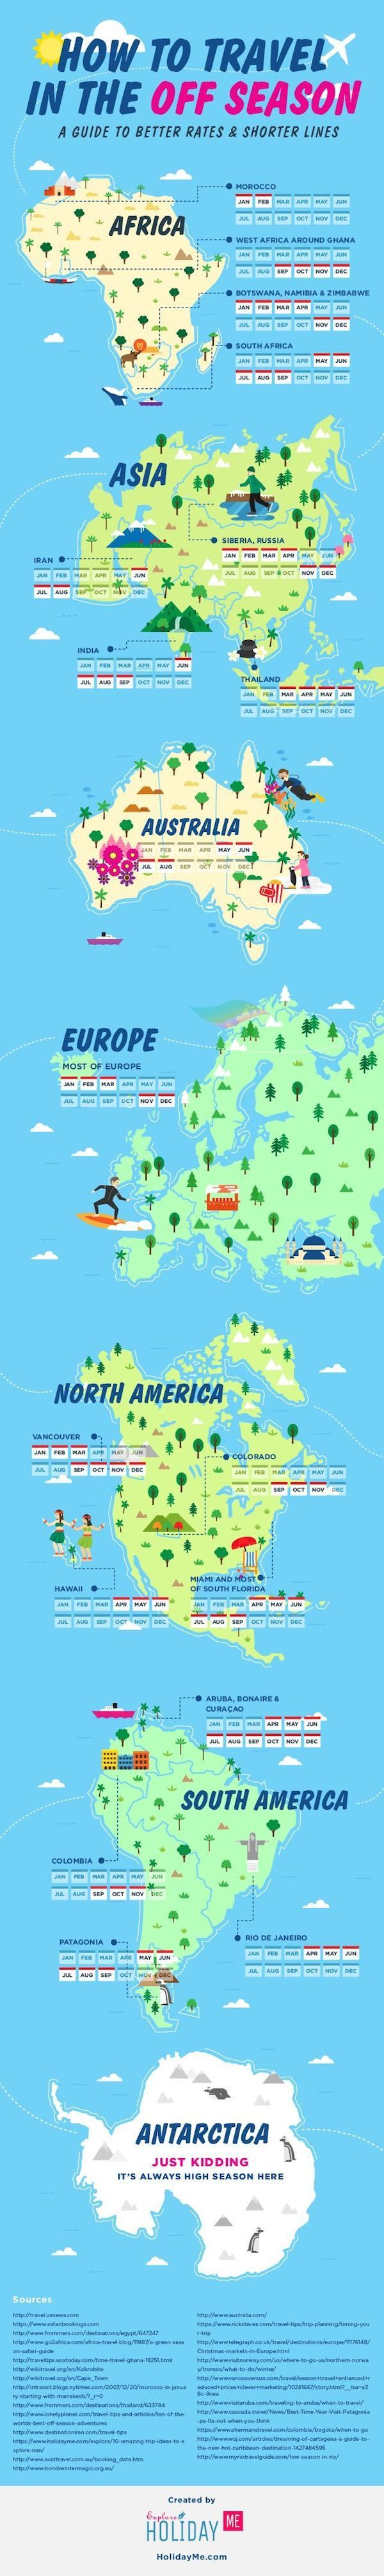 awesome Infographic: A Guide To Off Season Travel In Countries Around The World